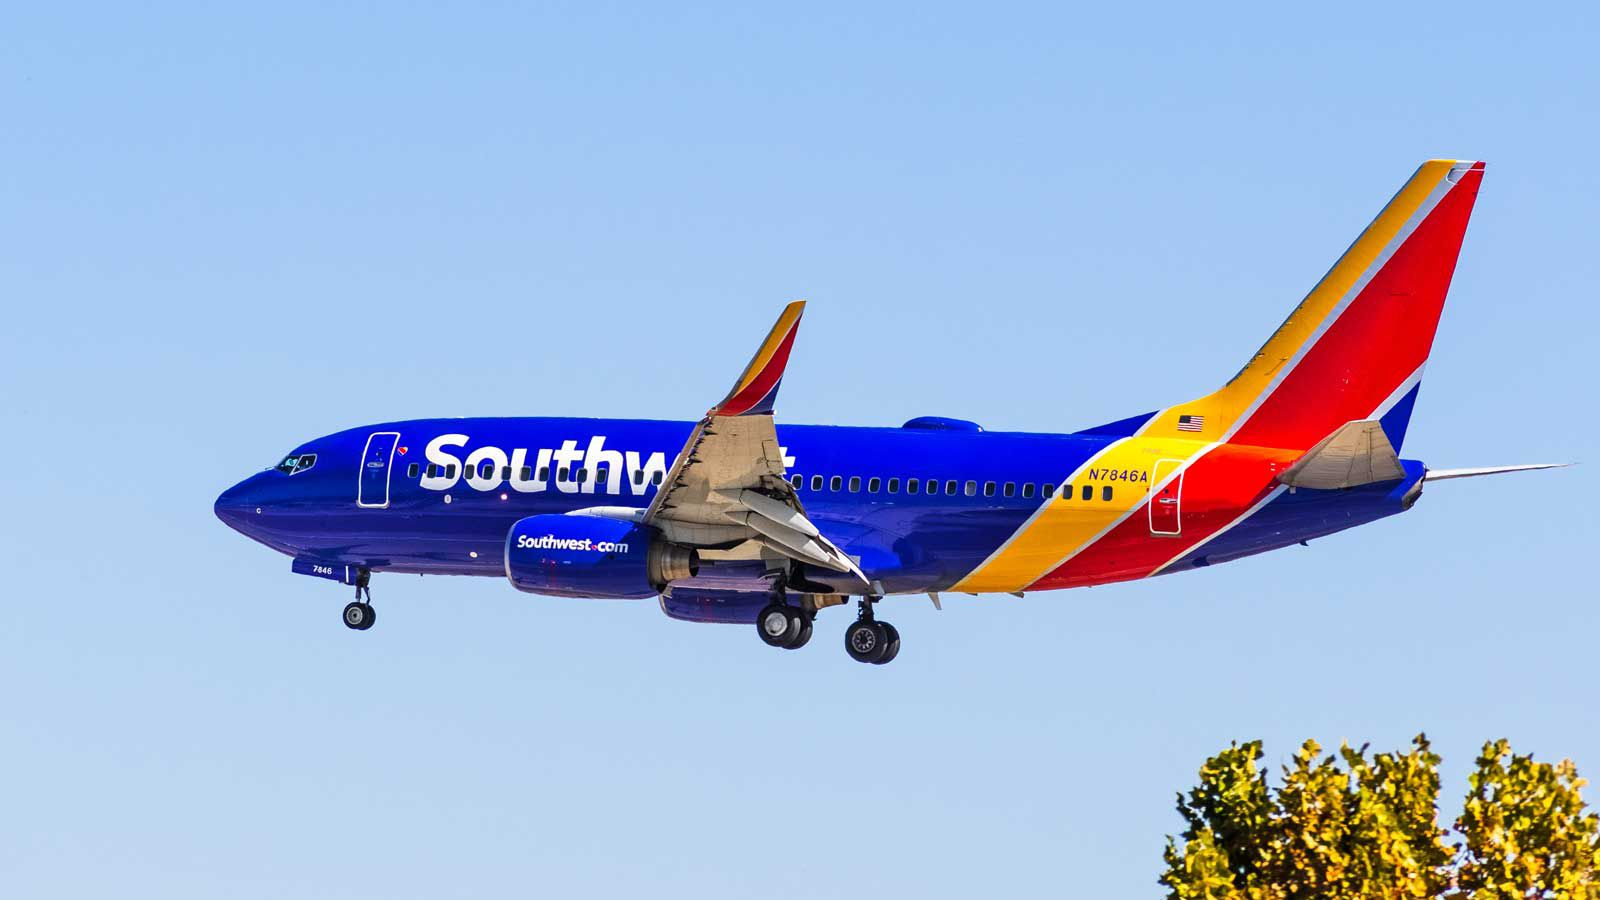 Southwest Airlines plane headed for landing